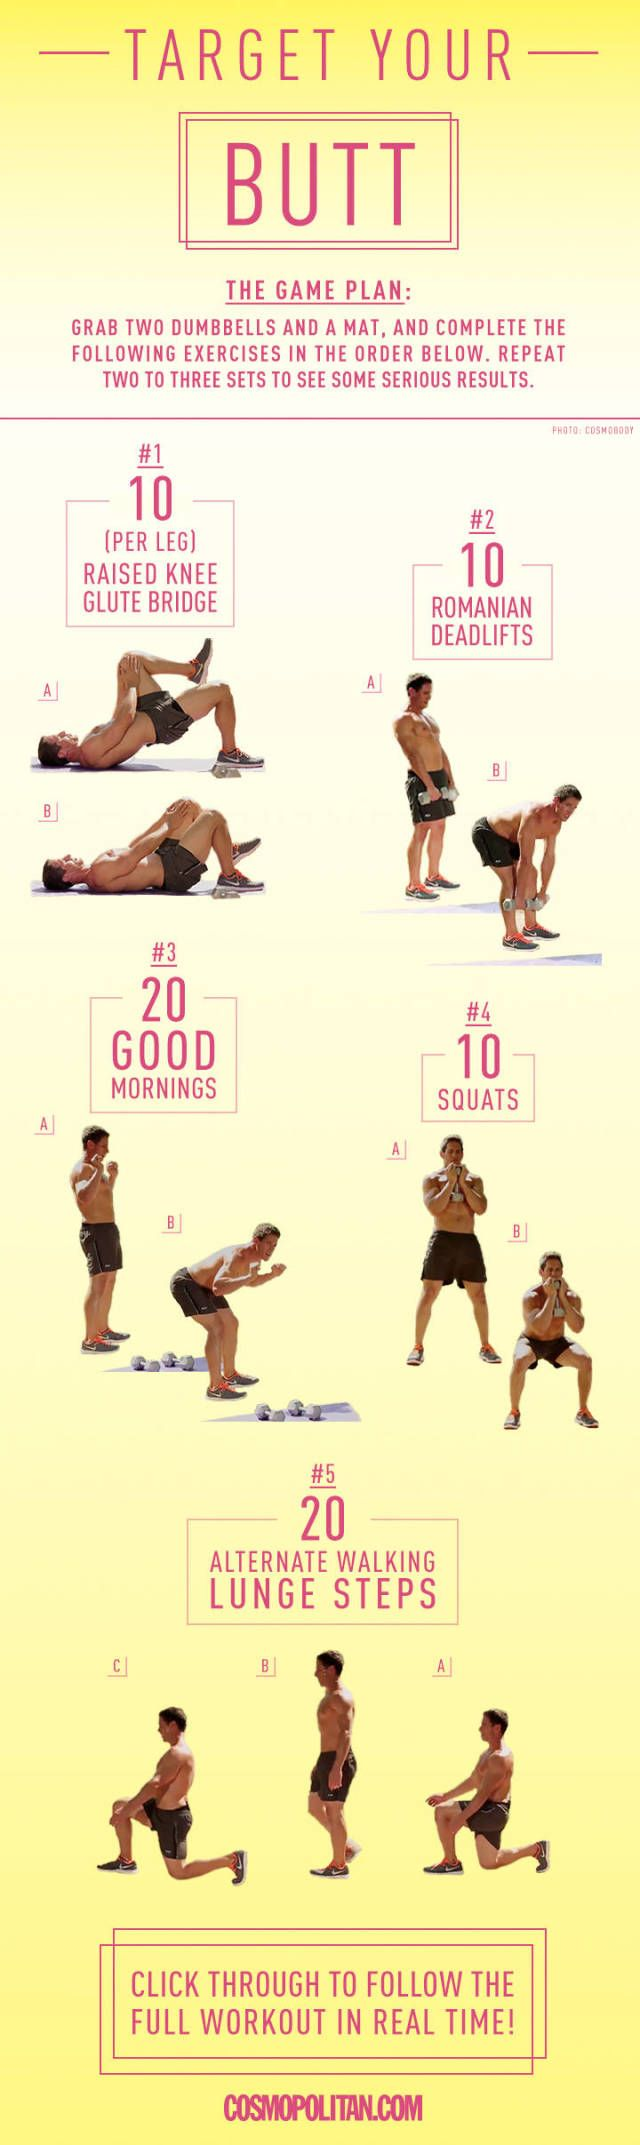 A+Full-Body+Workout+to+Firm+Up+Everything+ASAP -Cosmopolitan.com